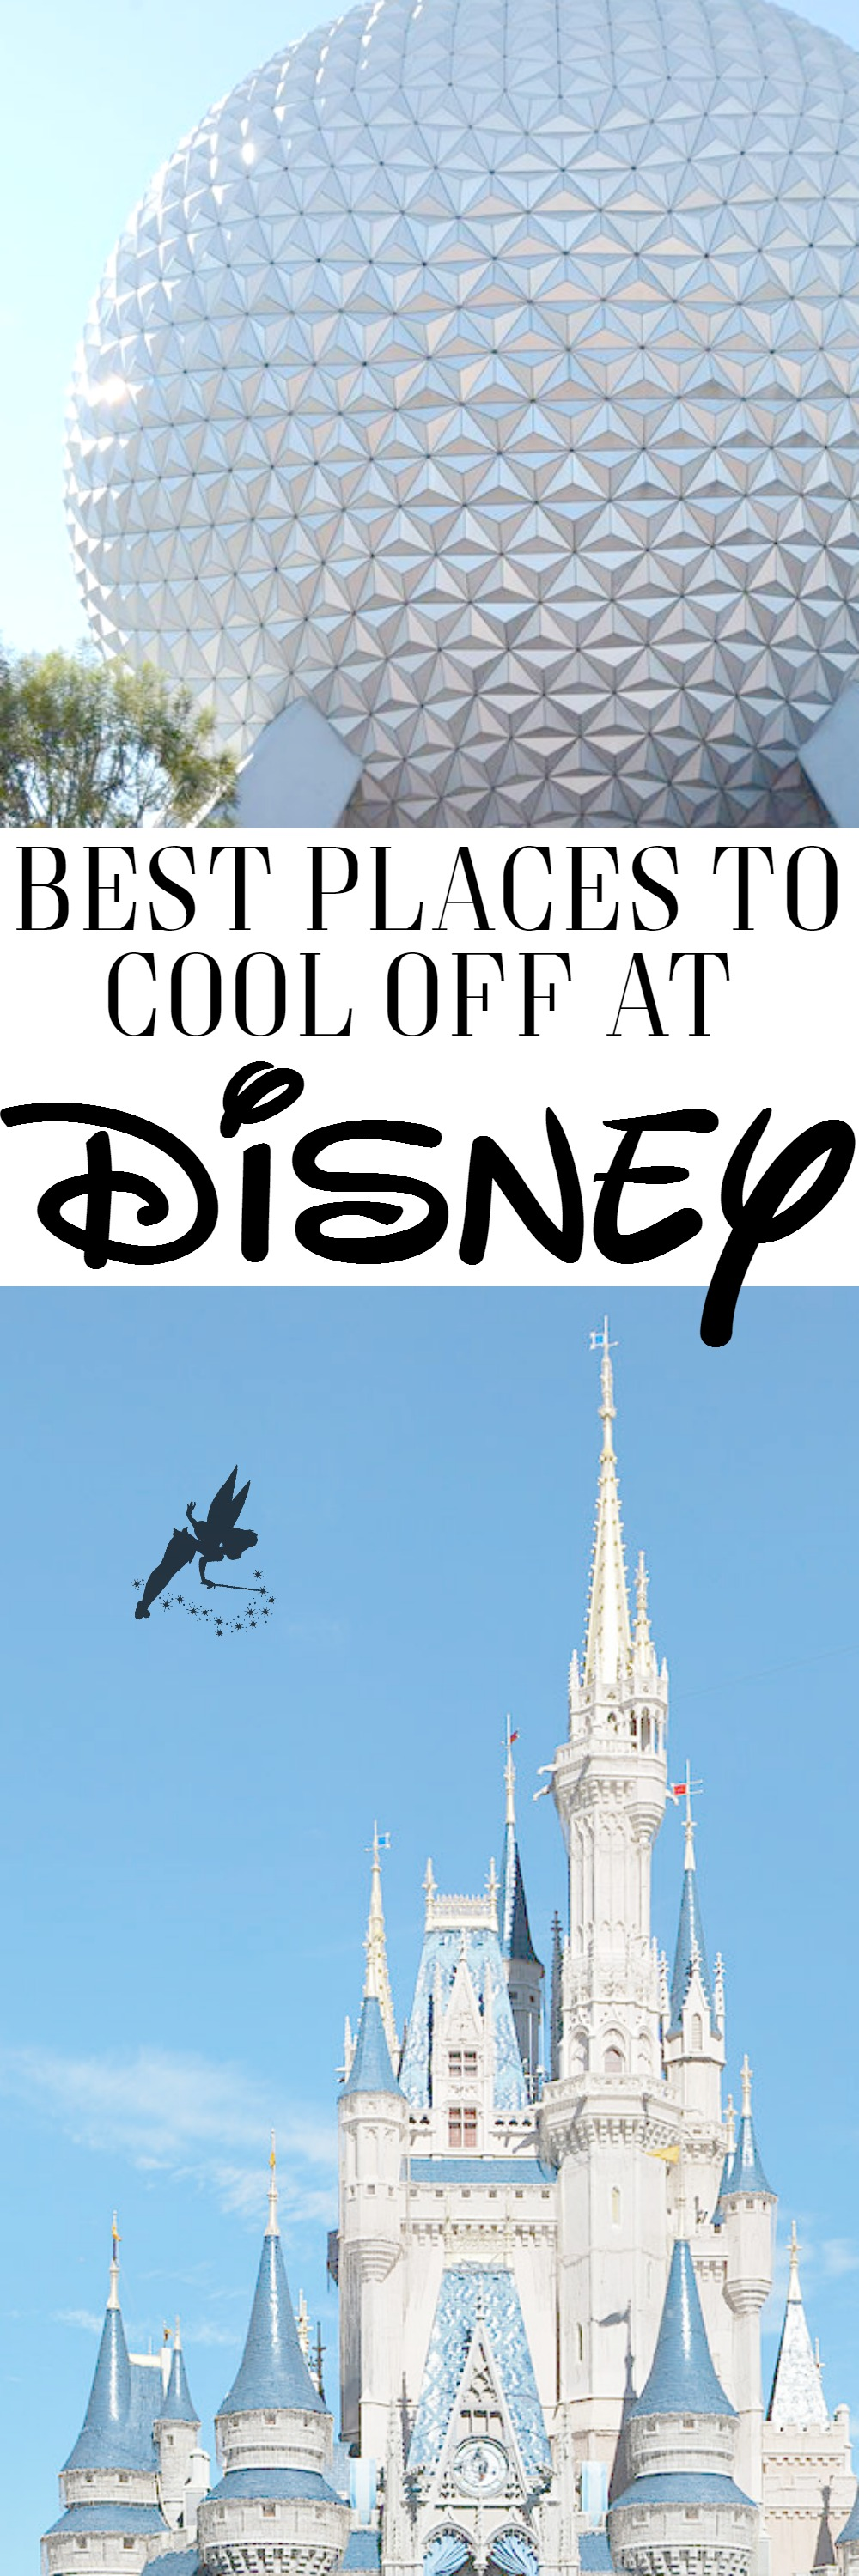 Best Places to Cool off at Disney